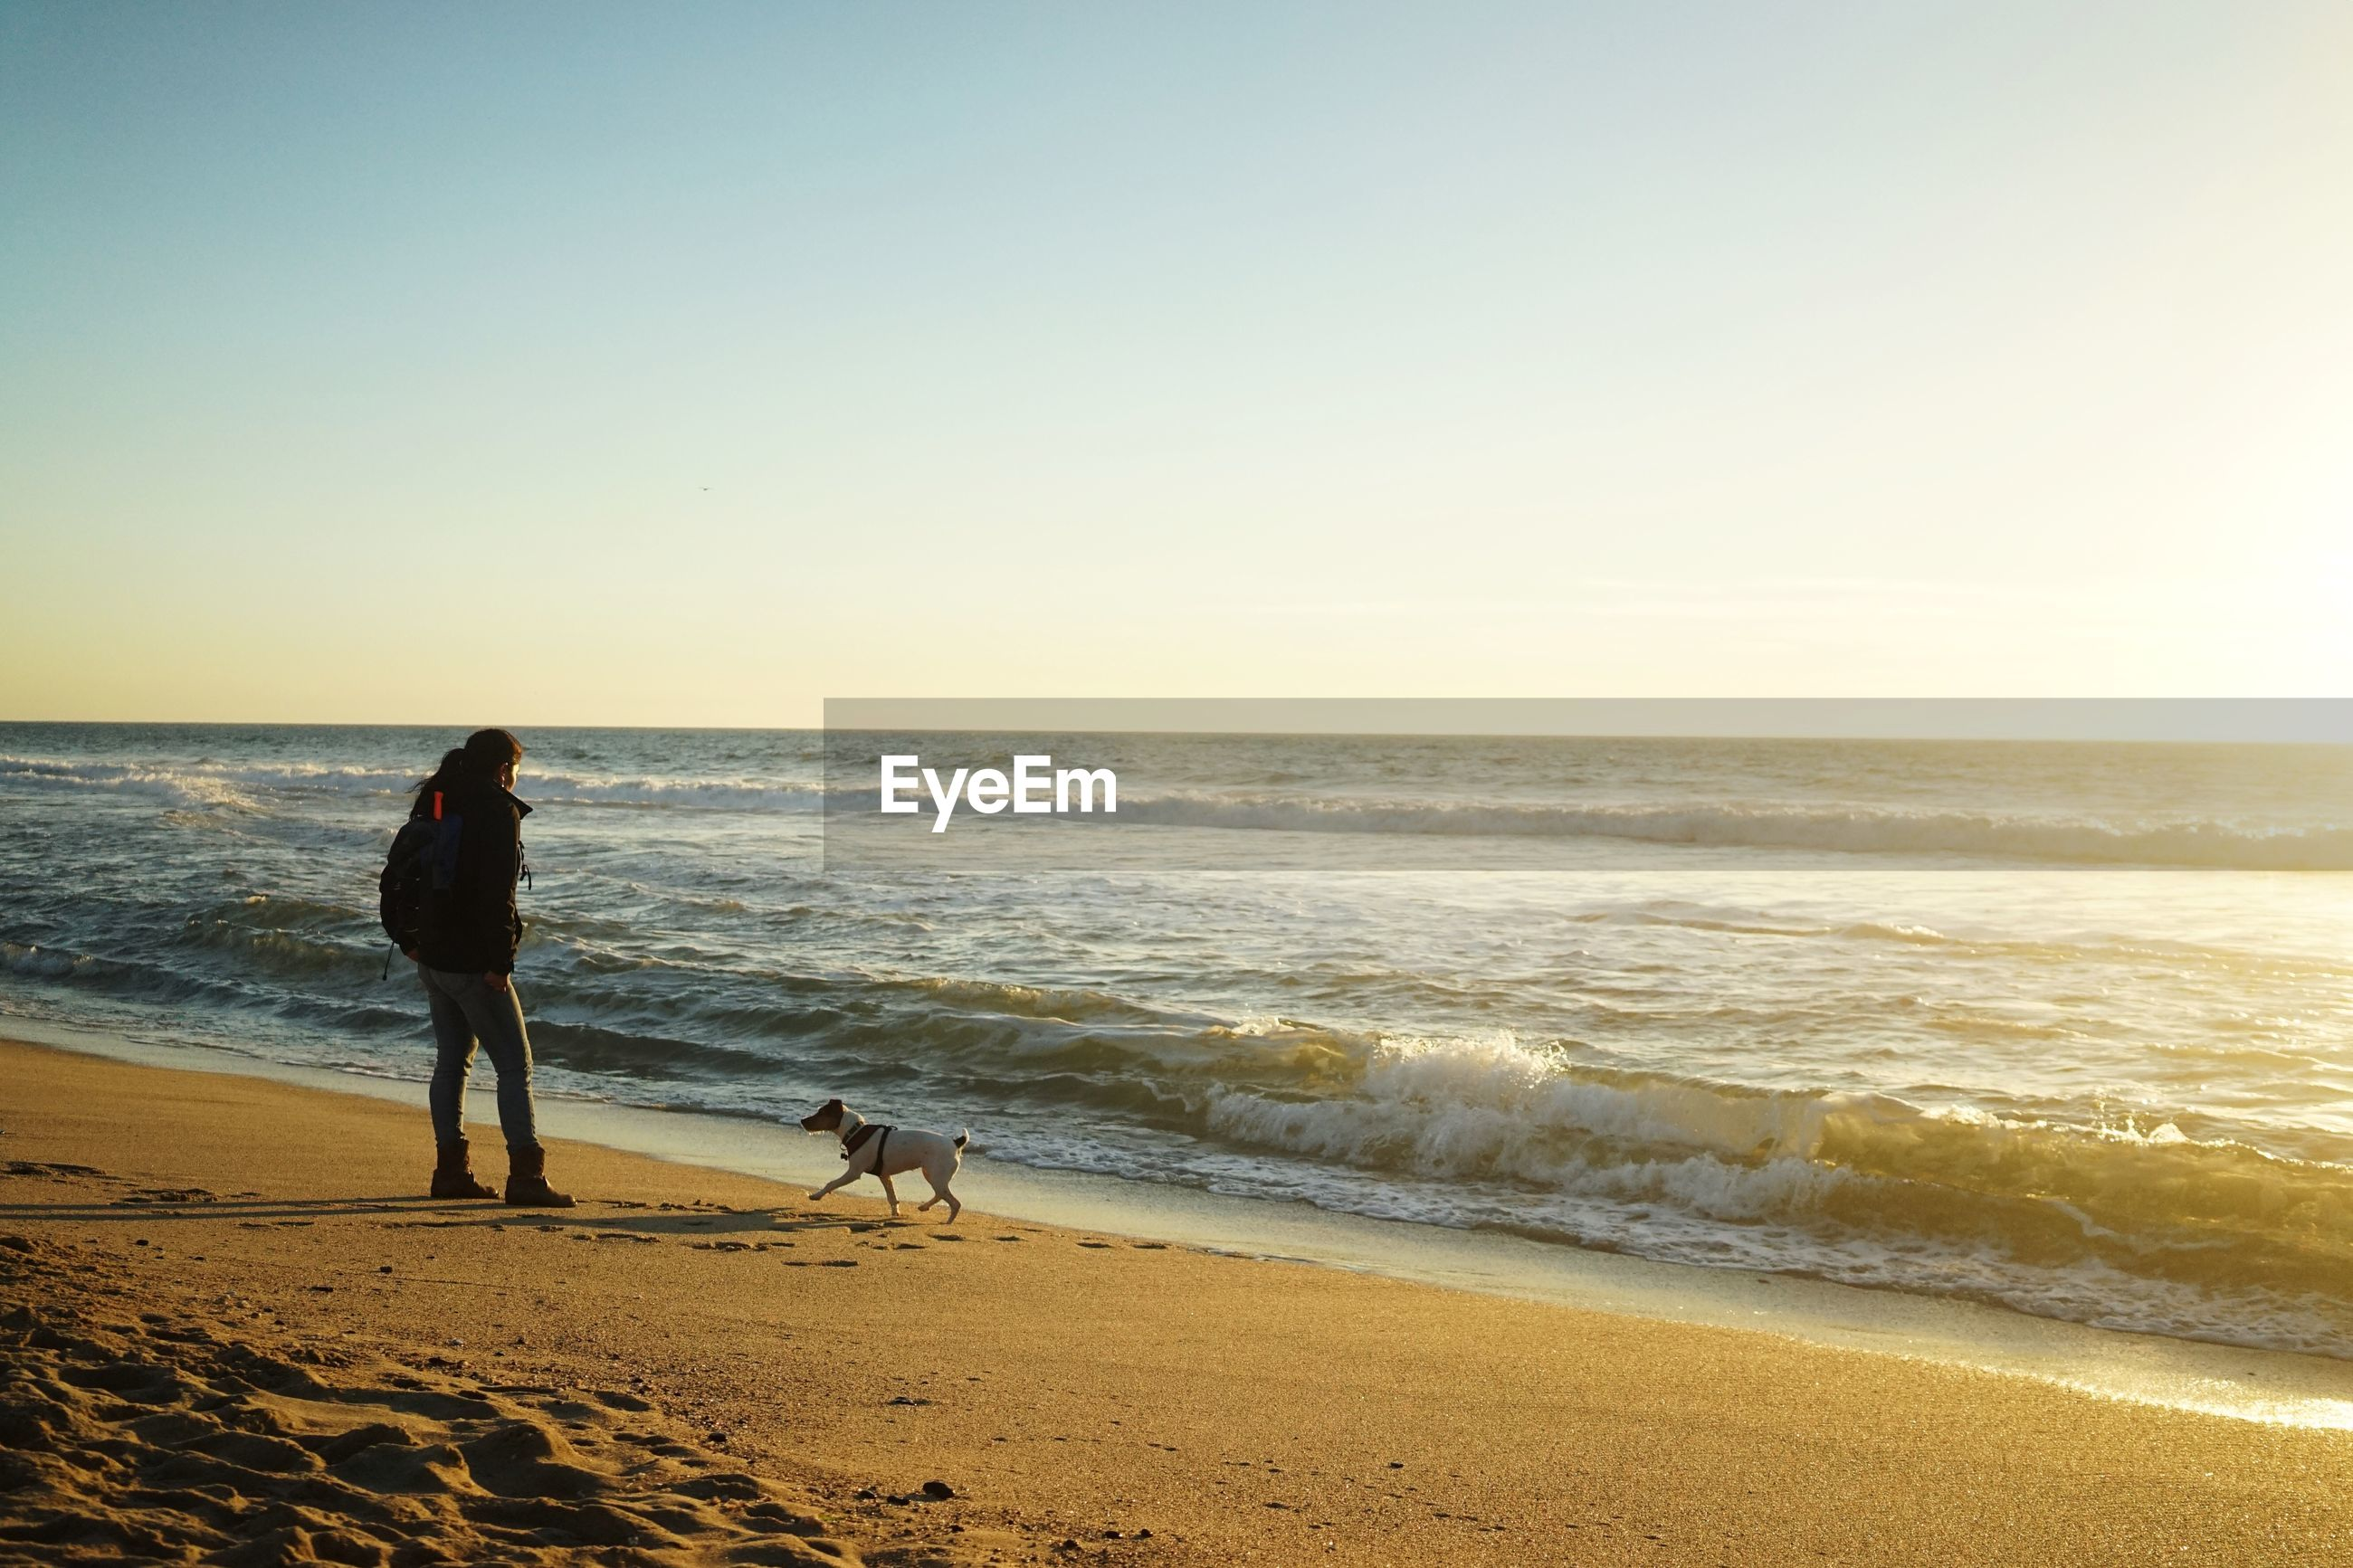 Woman with dog at shore against clear sky